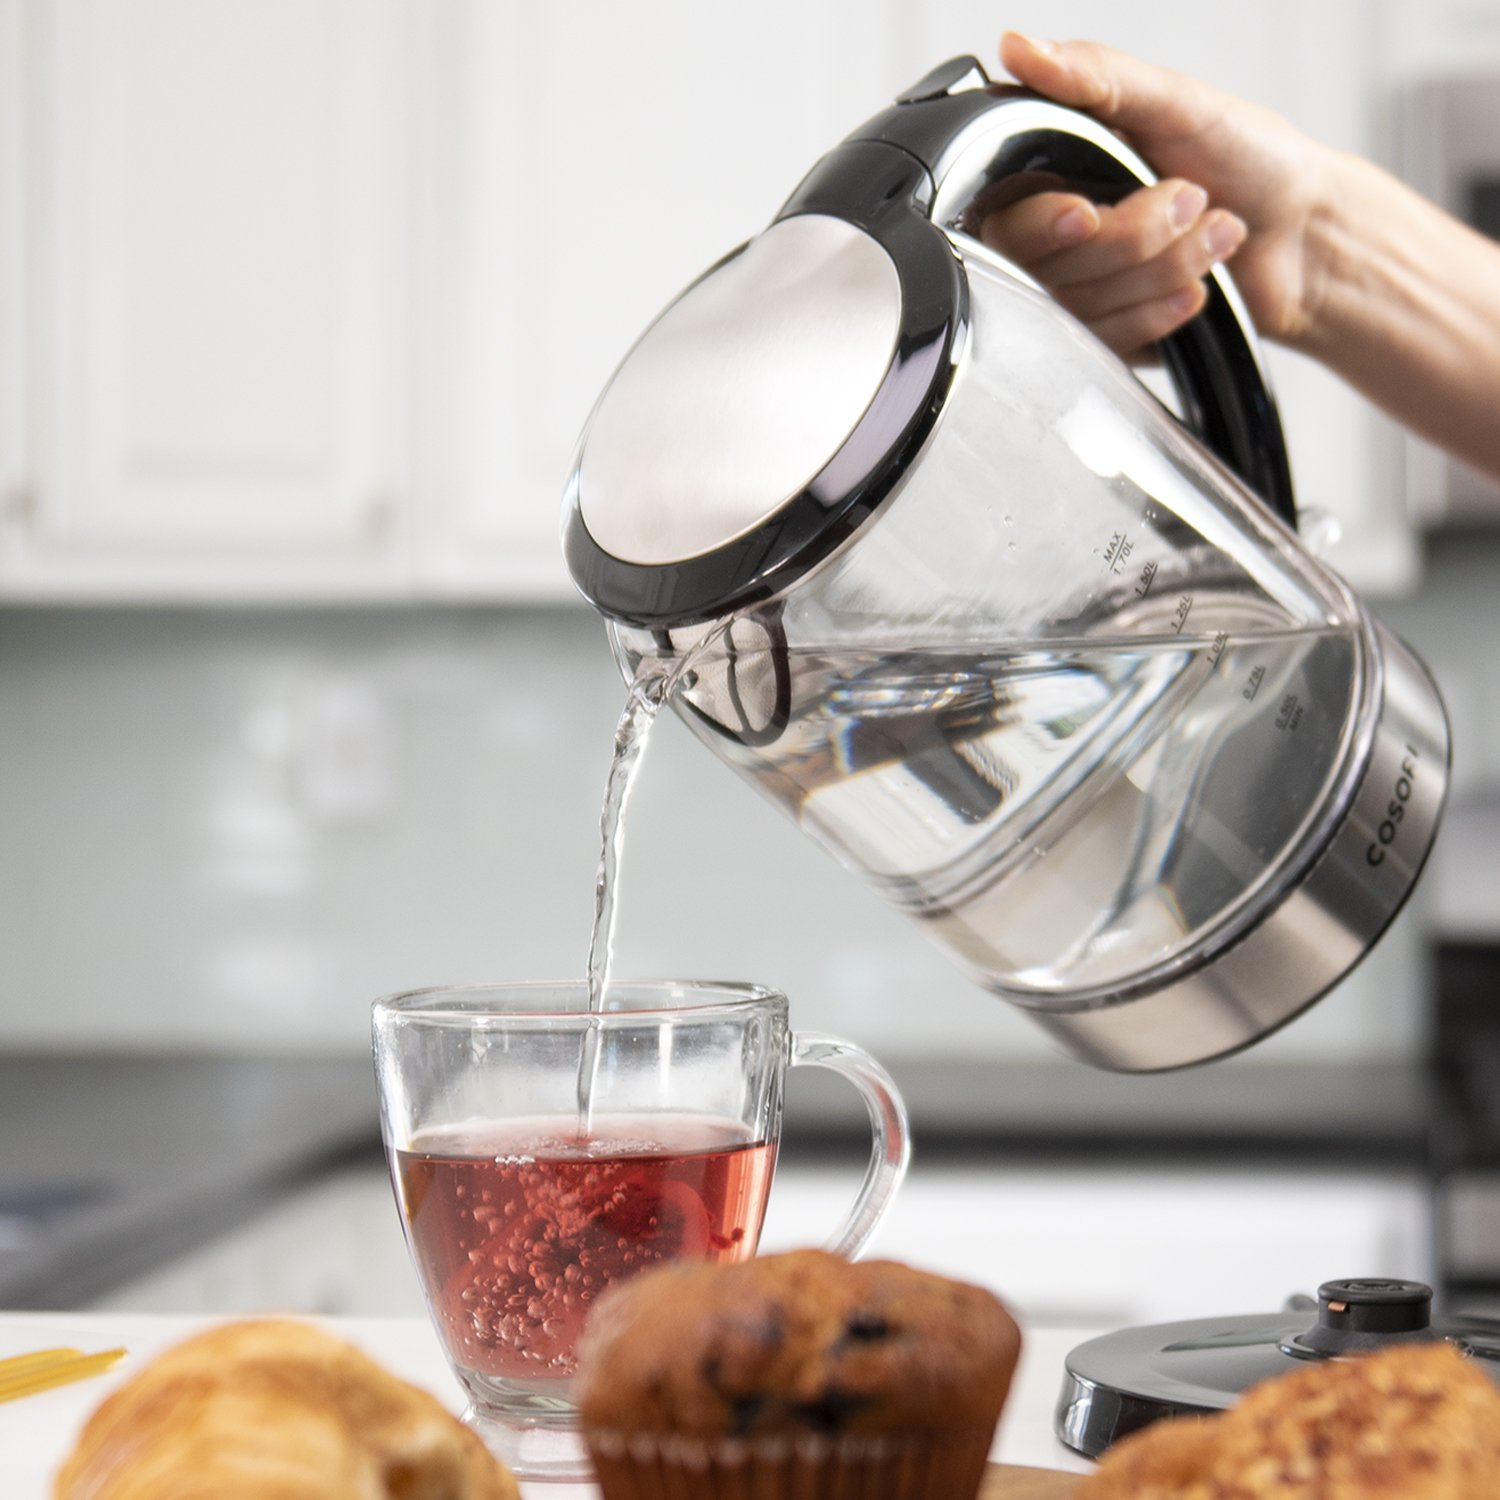 COSORI 1.7L Electric Kettle(BPA-Free), Cordless Glass Boiler,Coffee Pot,Water & Tea Heater with LED Indicator,Auto Shut-Off & Boil-Dry Protection,100% Stainless Steel Inner Lid & Bottom,1500W,CO171-GK by COSORI (Image #6)